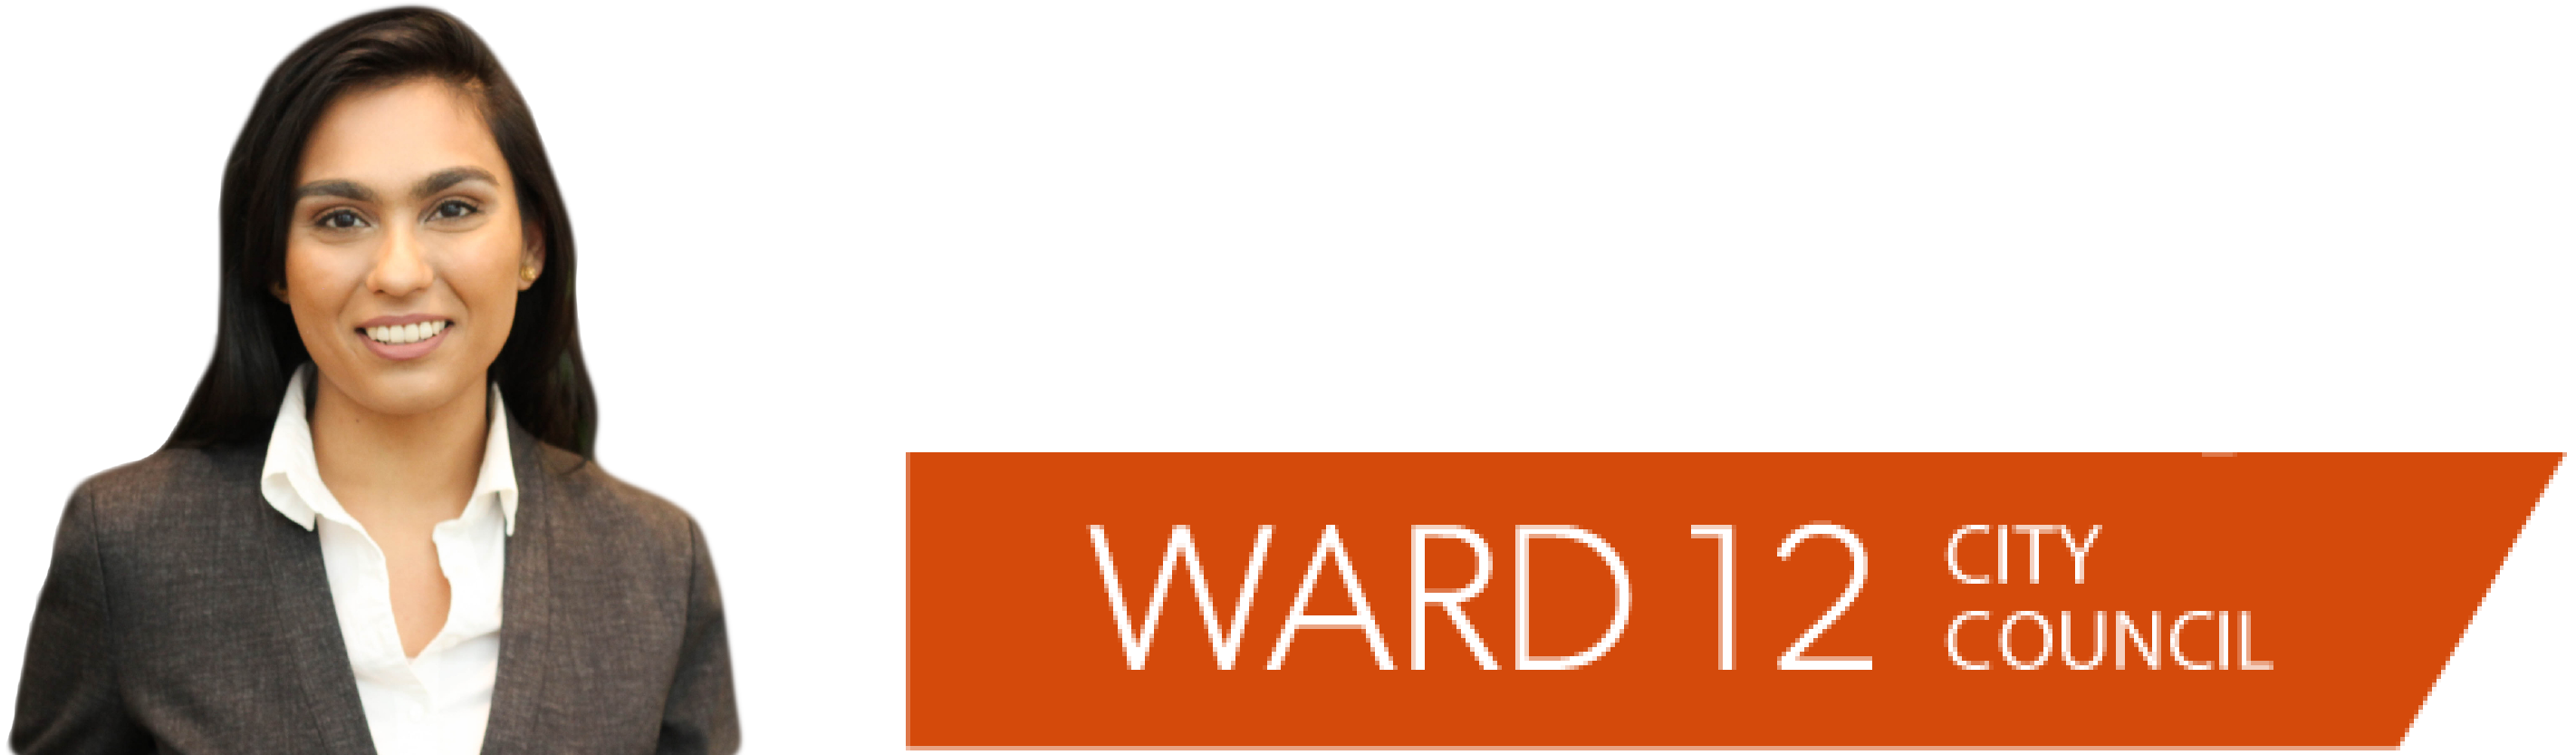 Nav Kaur for Ward 12